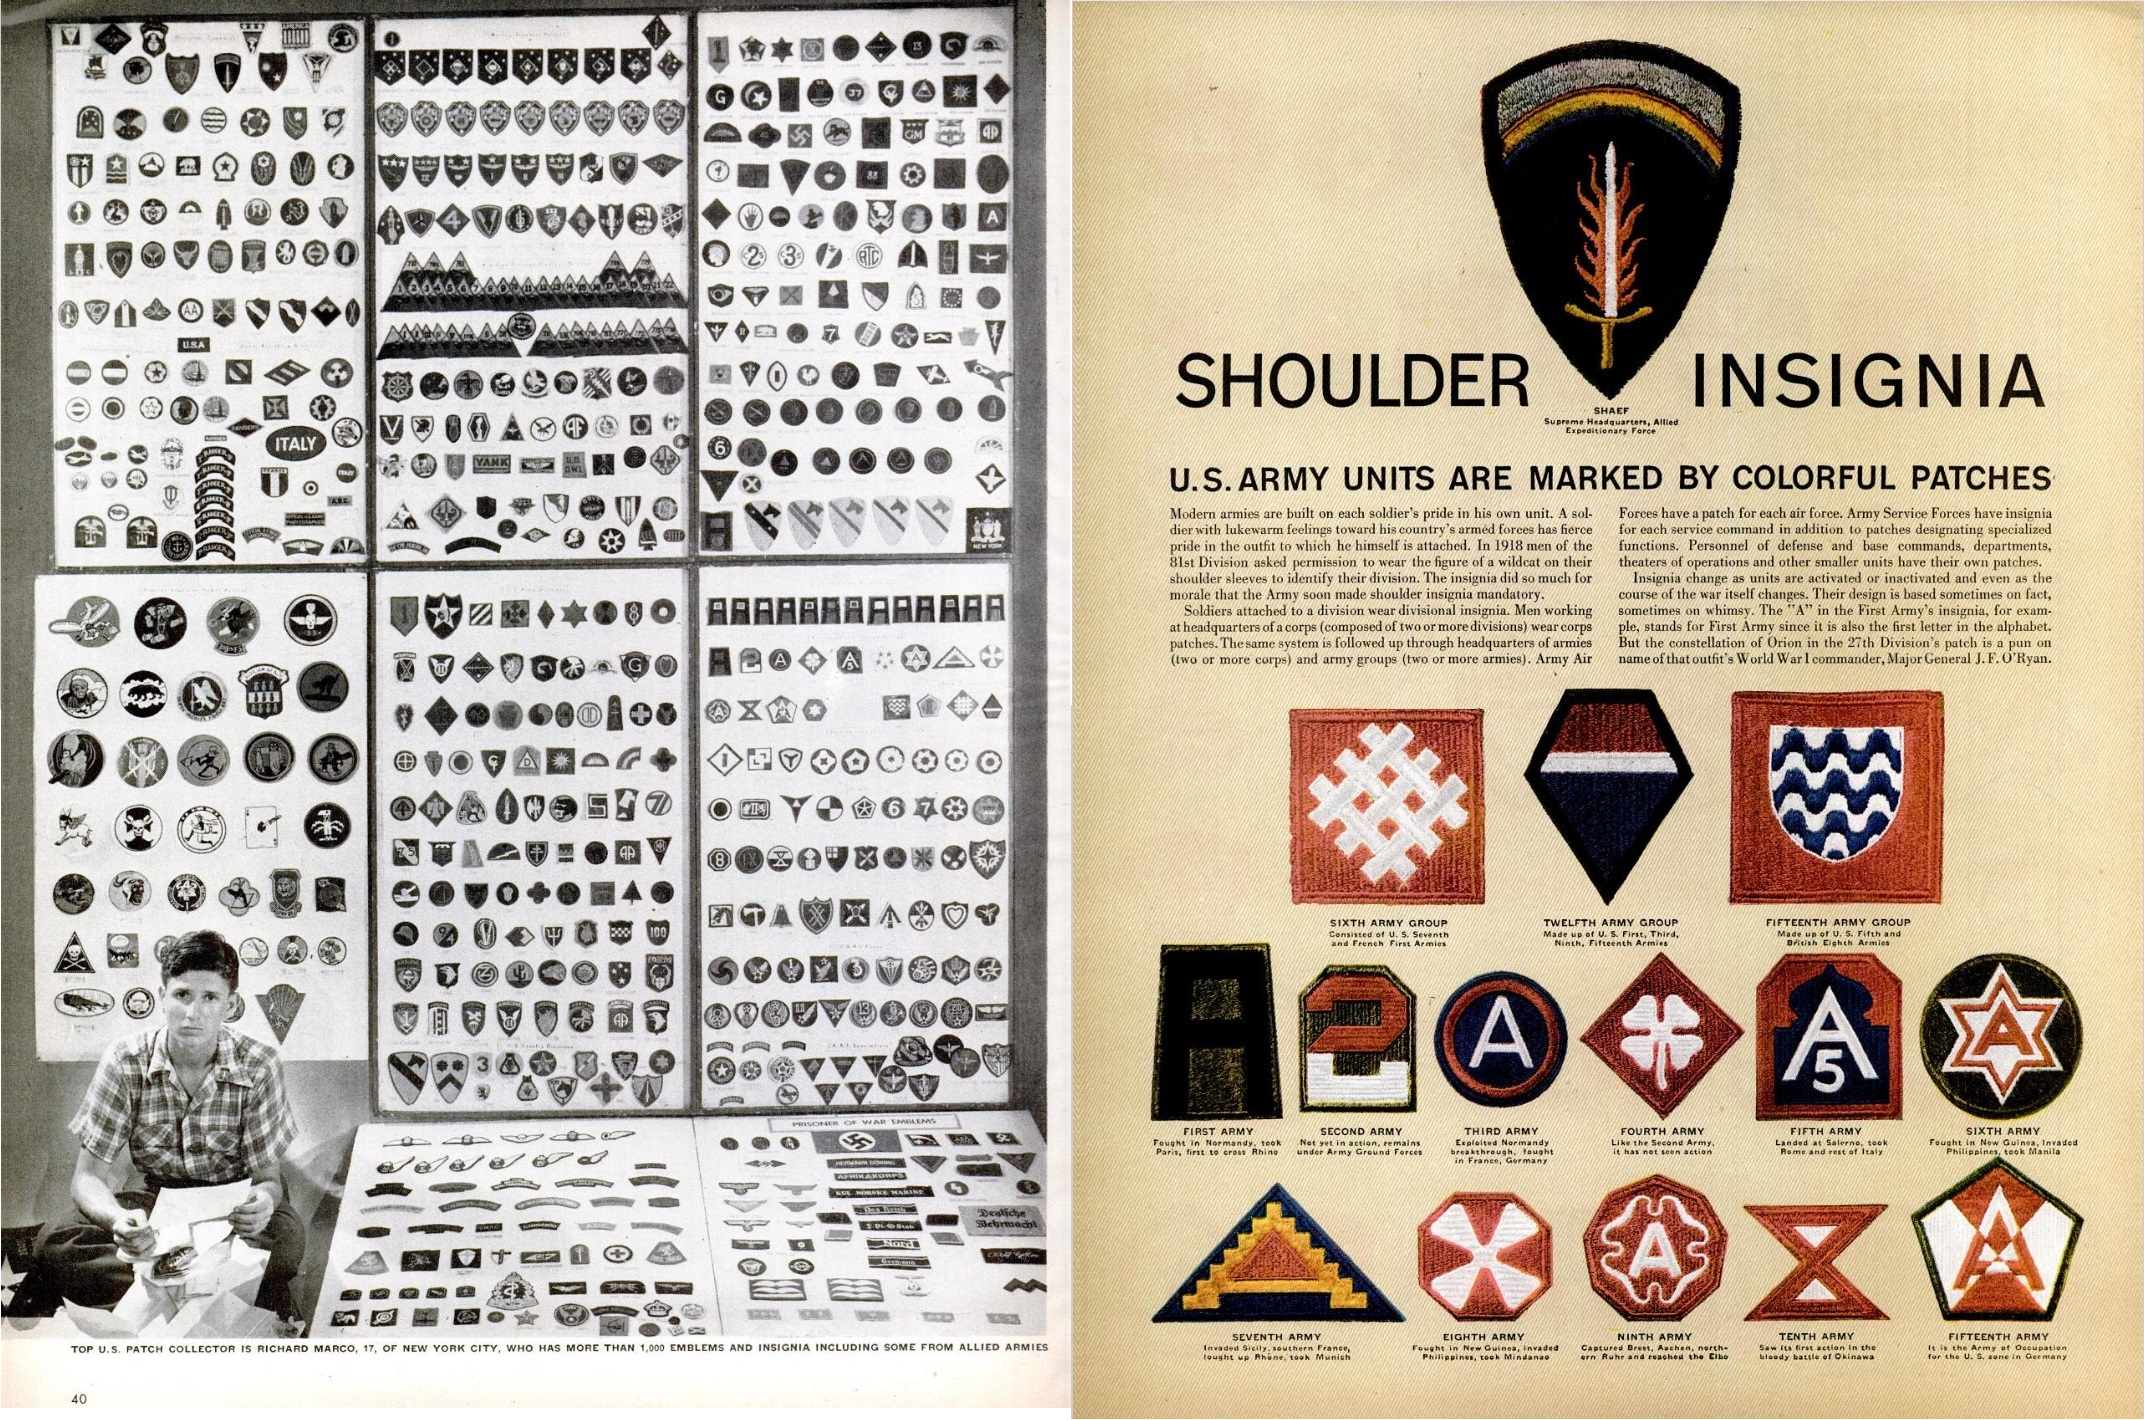 Army Shoulder Insignia - Life, Aug. 6, 1945 - page 1.jpg